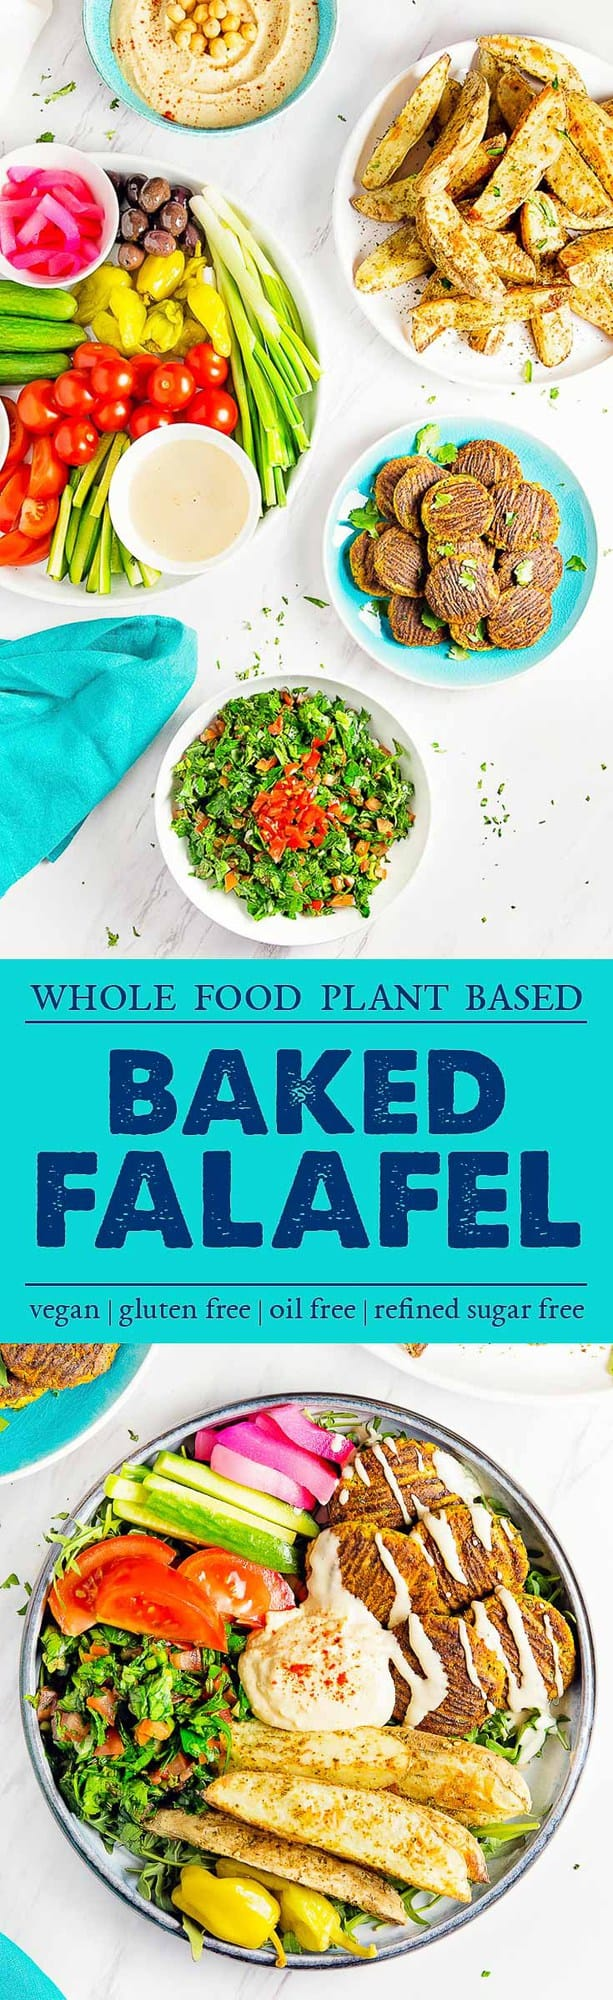 Baked Falafel, plant based, vegan, vegetarian, whole food plant based, gluten free, recipe, wfpb, healthy, healthy vegan, oil free, no refined sugar, no oil, refined sugar free, dairy free, dinner party, entertaining, dinner, falafel